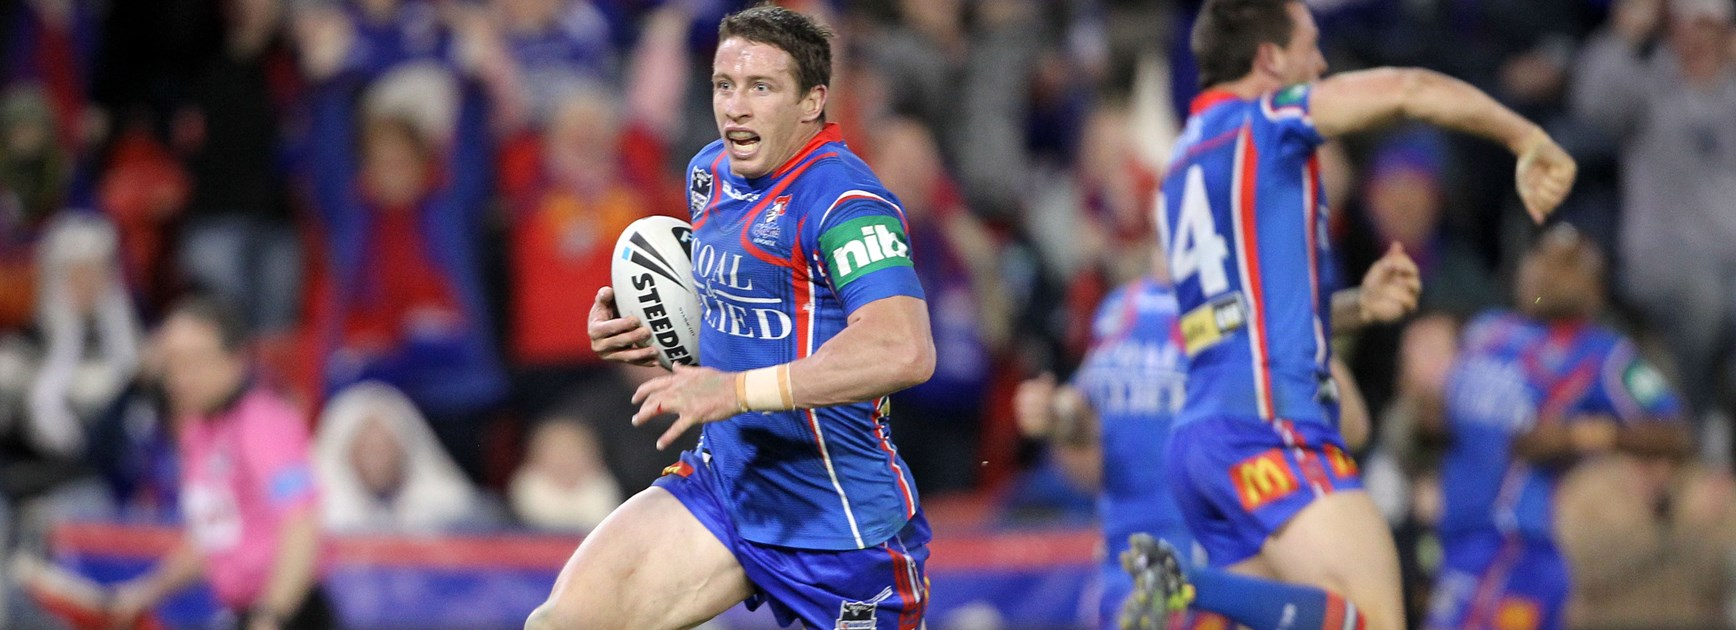 Super-fit Gidley thrilled to pull on beloved Knights jersey again